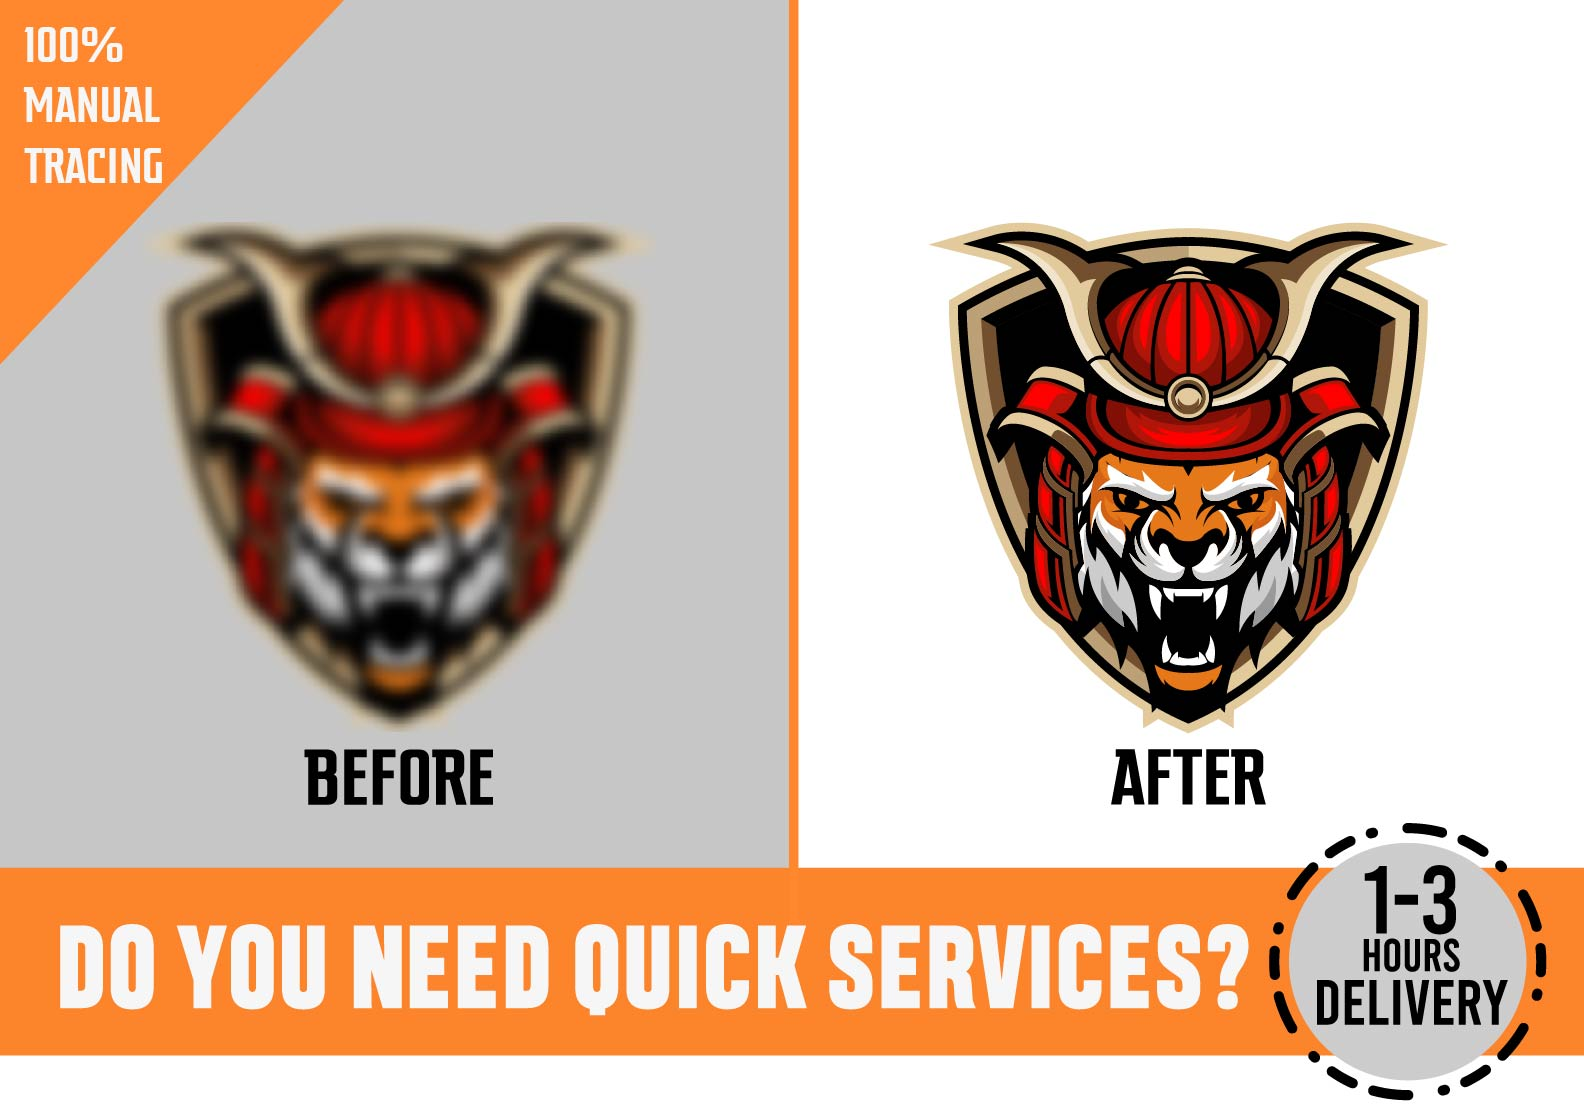 I will do vector tracing, vectorise, recreate, redraw logo, icon, tattoo, symbol and more